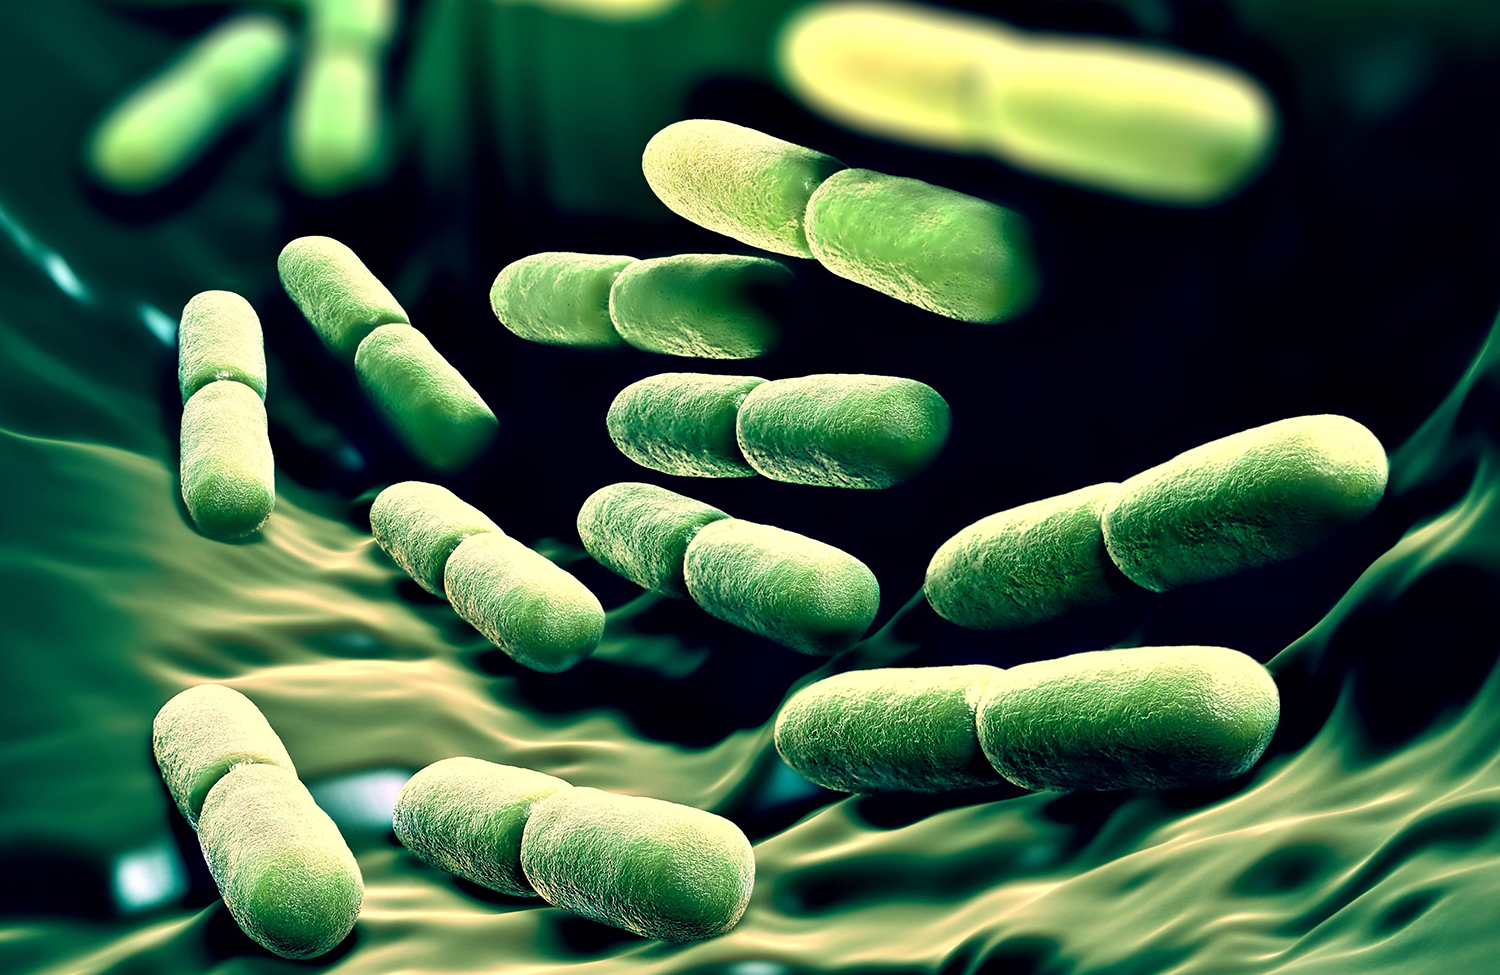 Gut microbiota and immune system function scaled